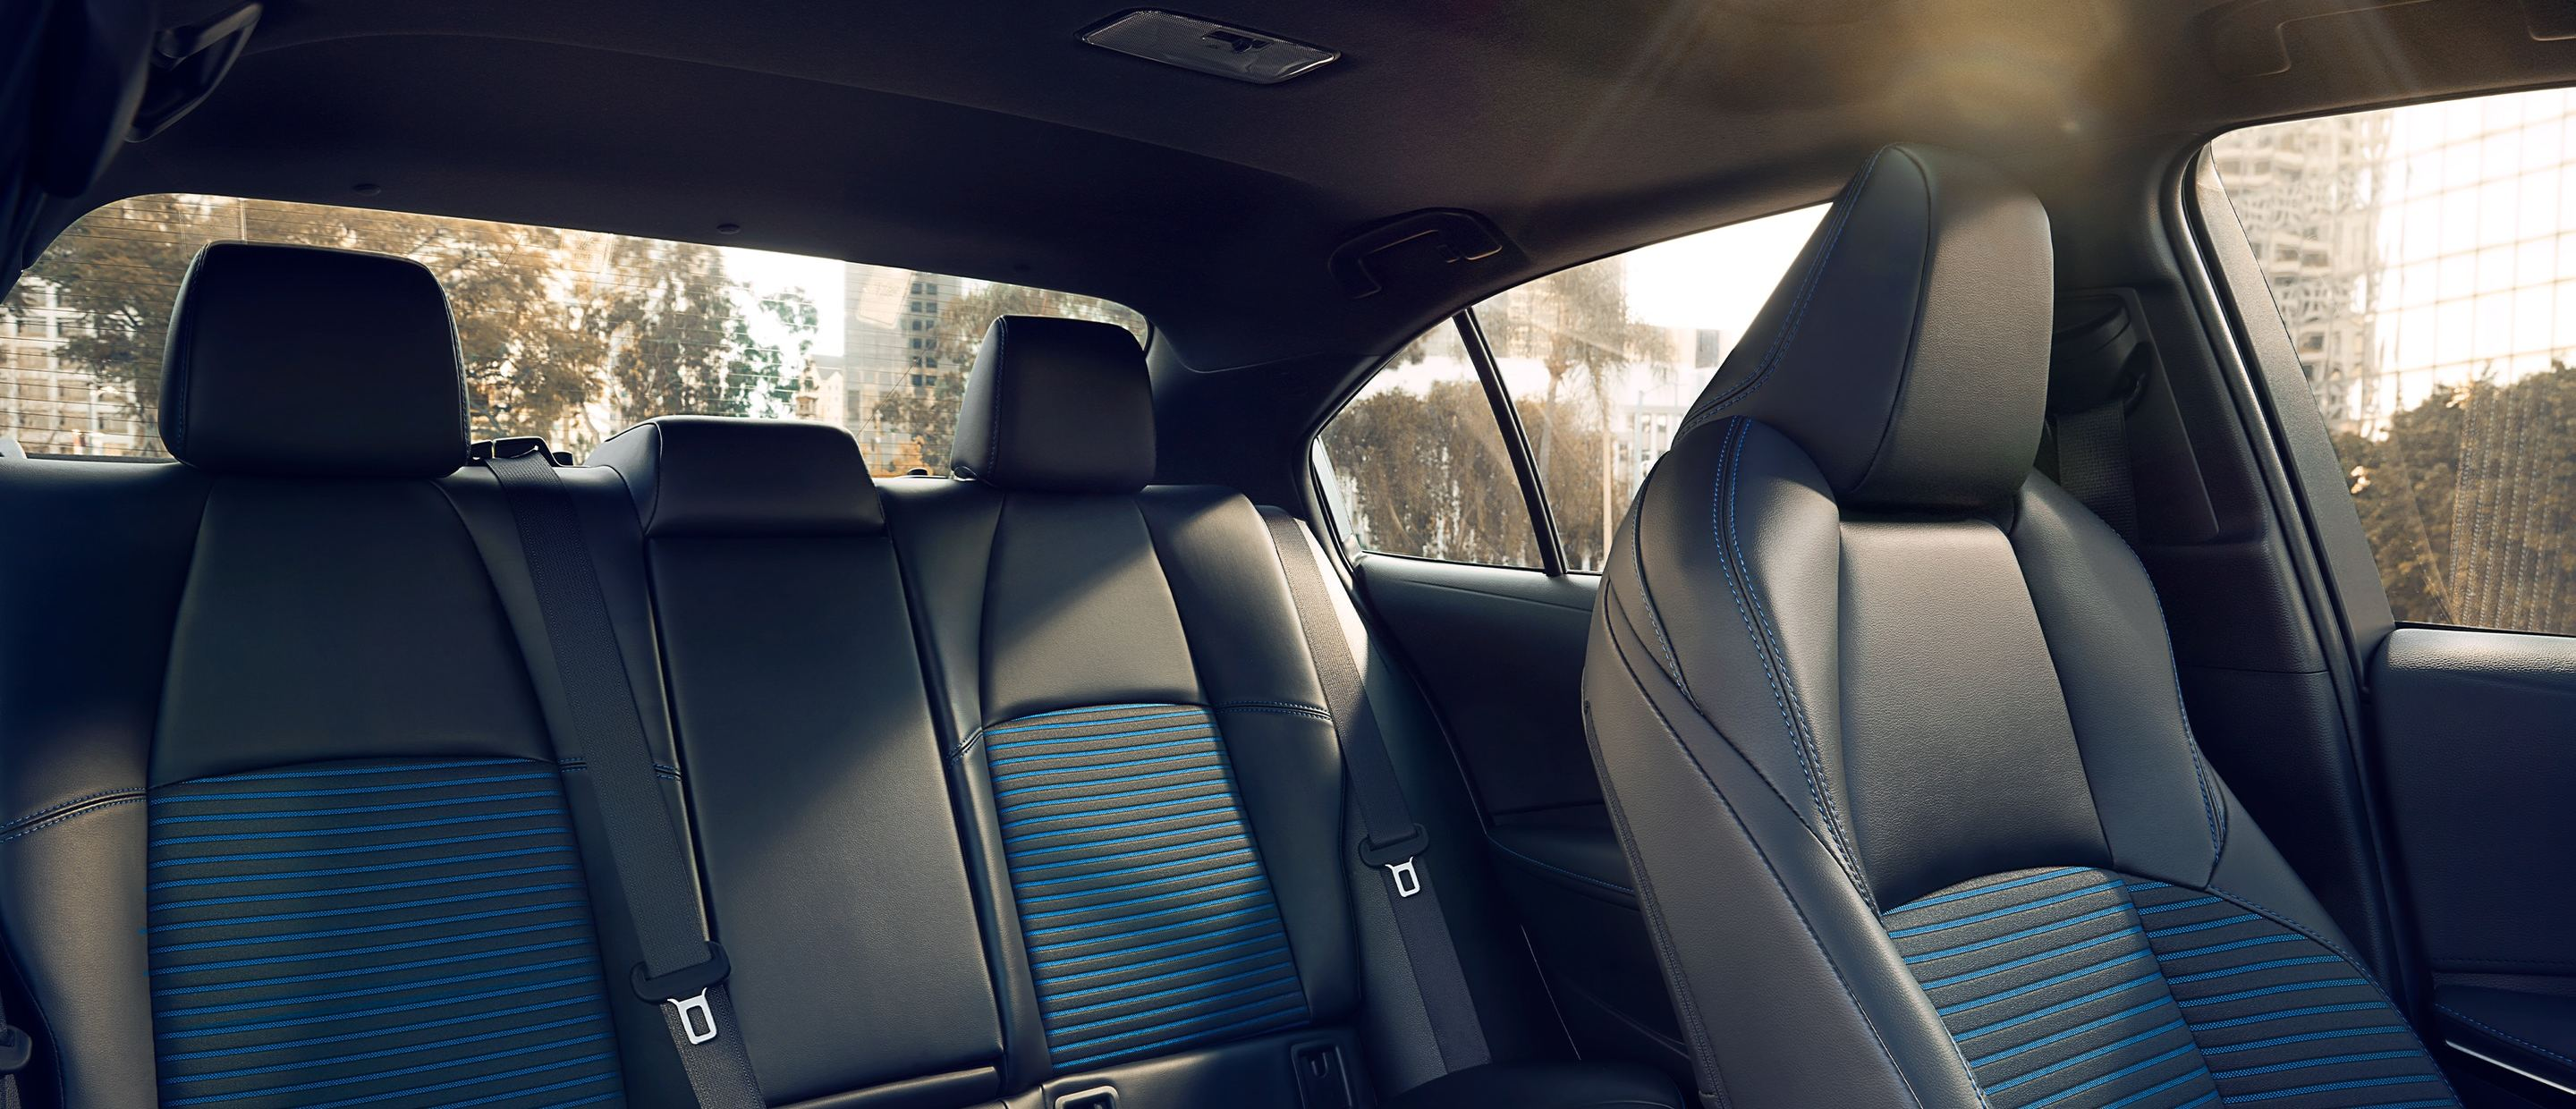 Cozy Seats in the 2020 Toyota Corolla